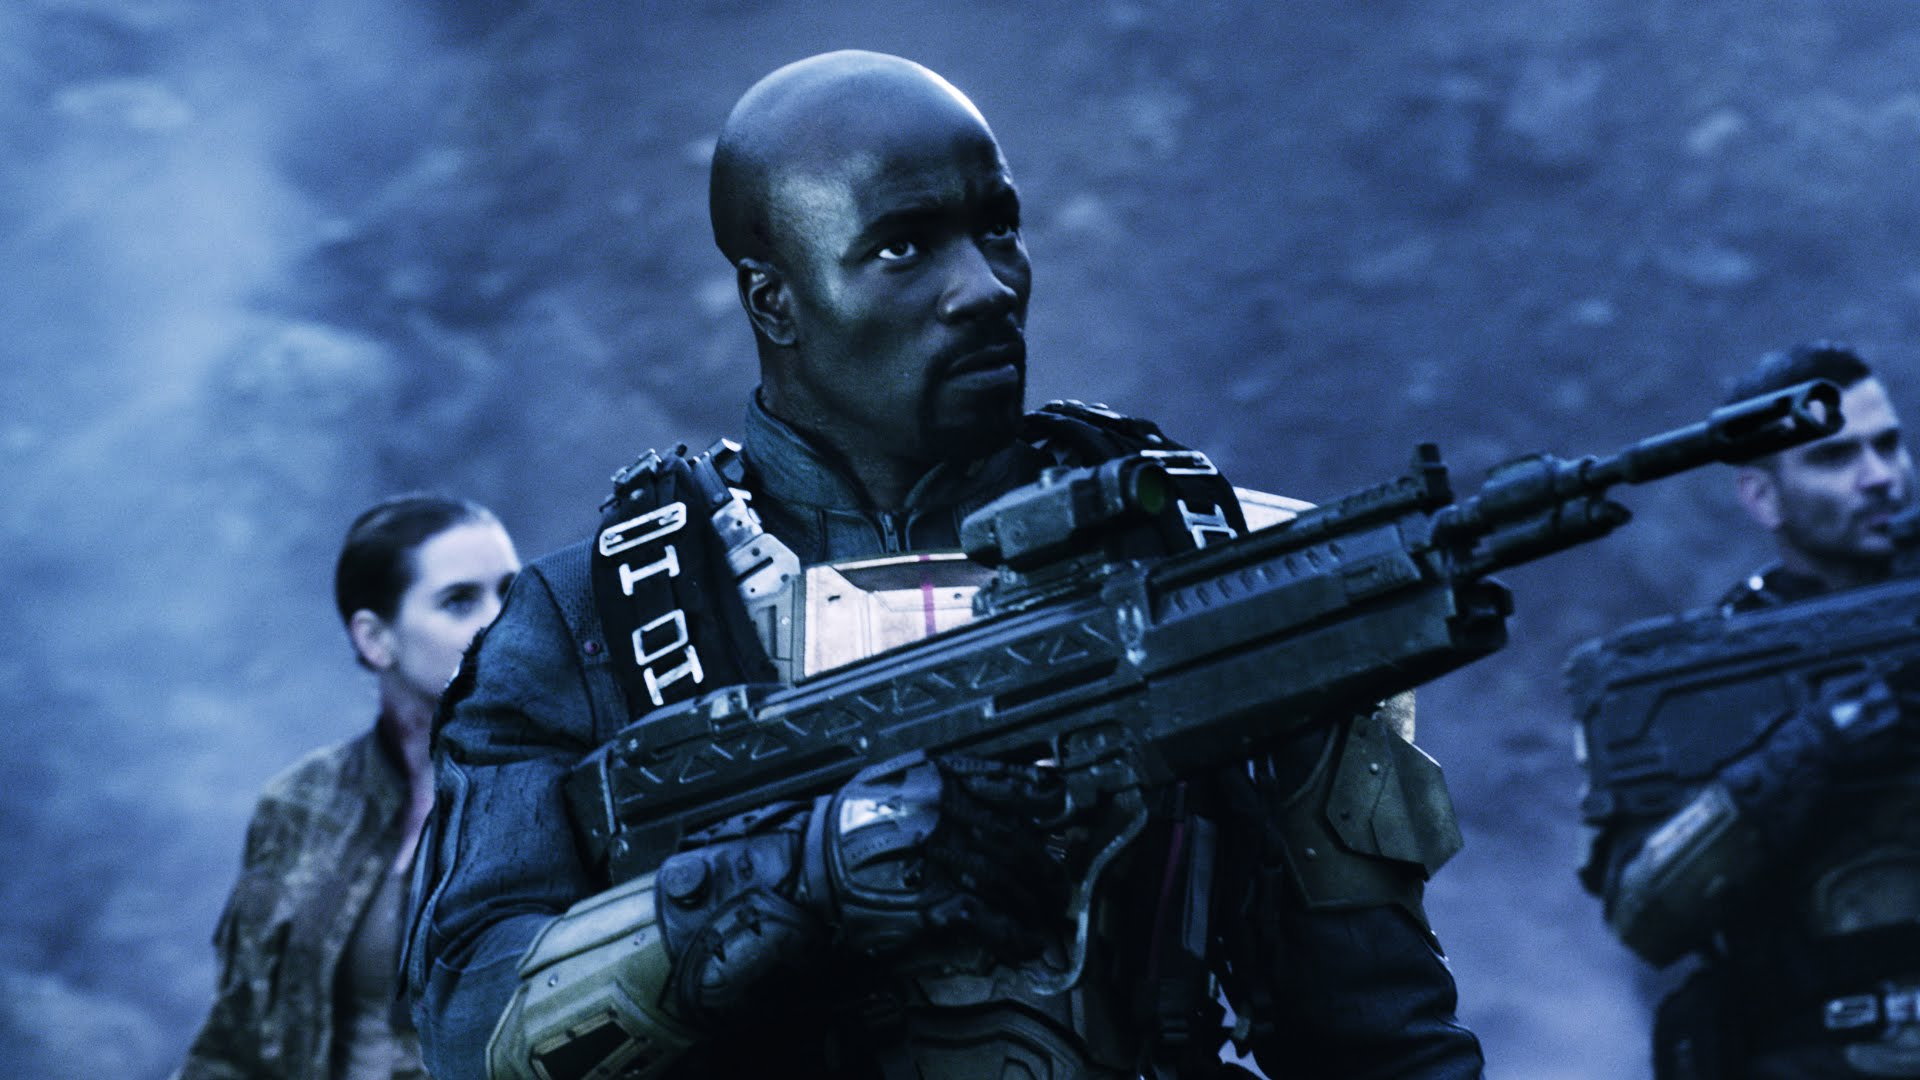 Video forSDCC 14: 343 Industries and Scott Free Productions Offer First-Look of Halo: Nightfall